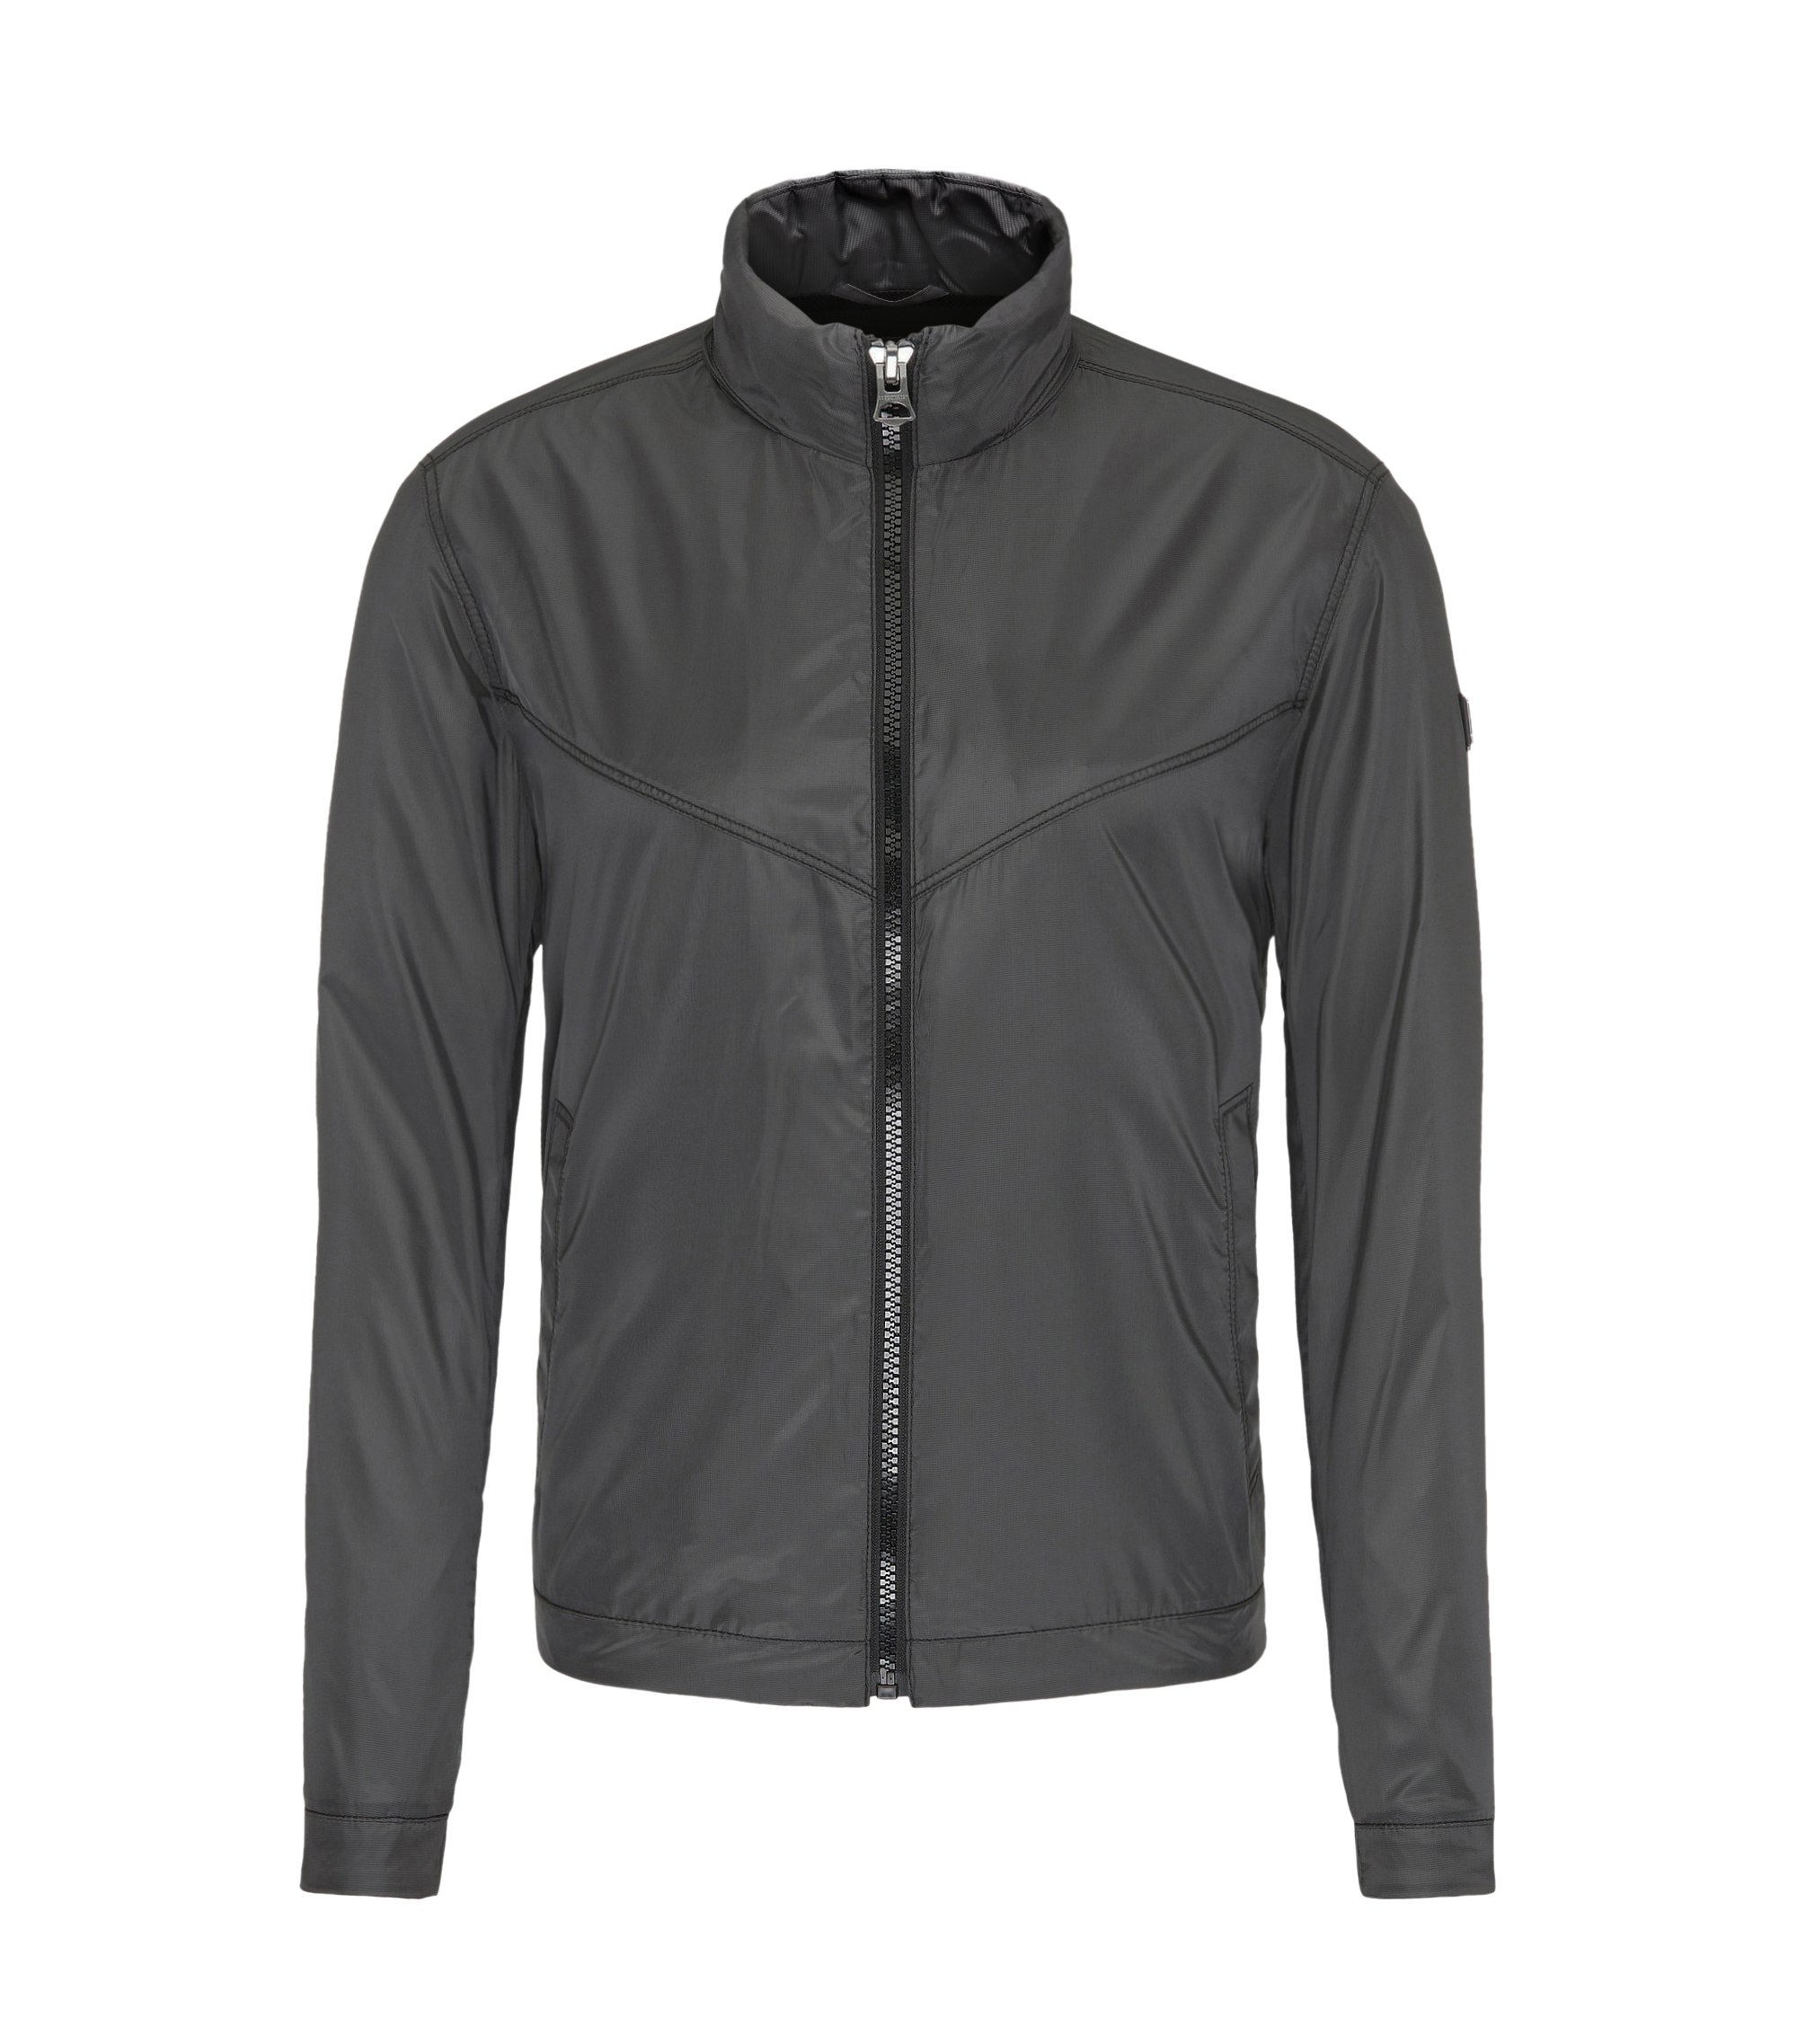 Checked Lightweight Jacket   Ombay, Black